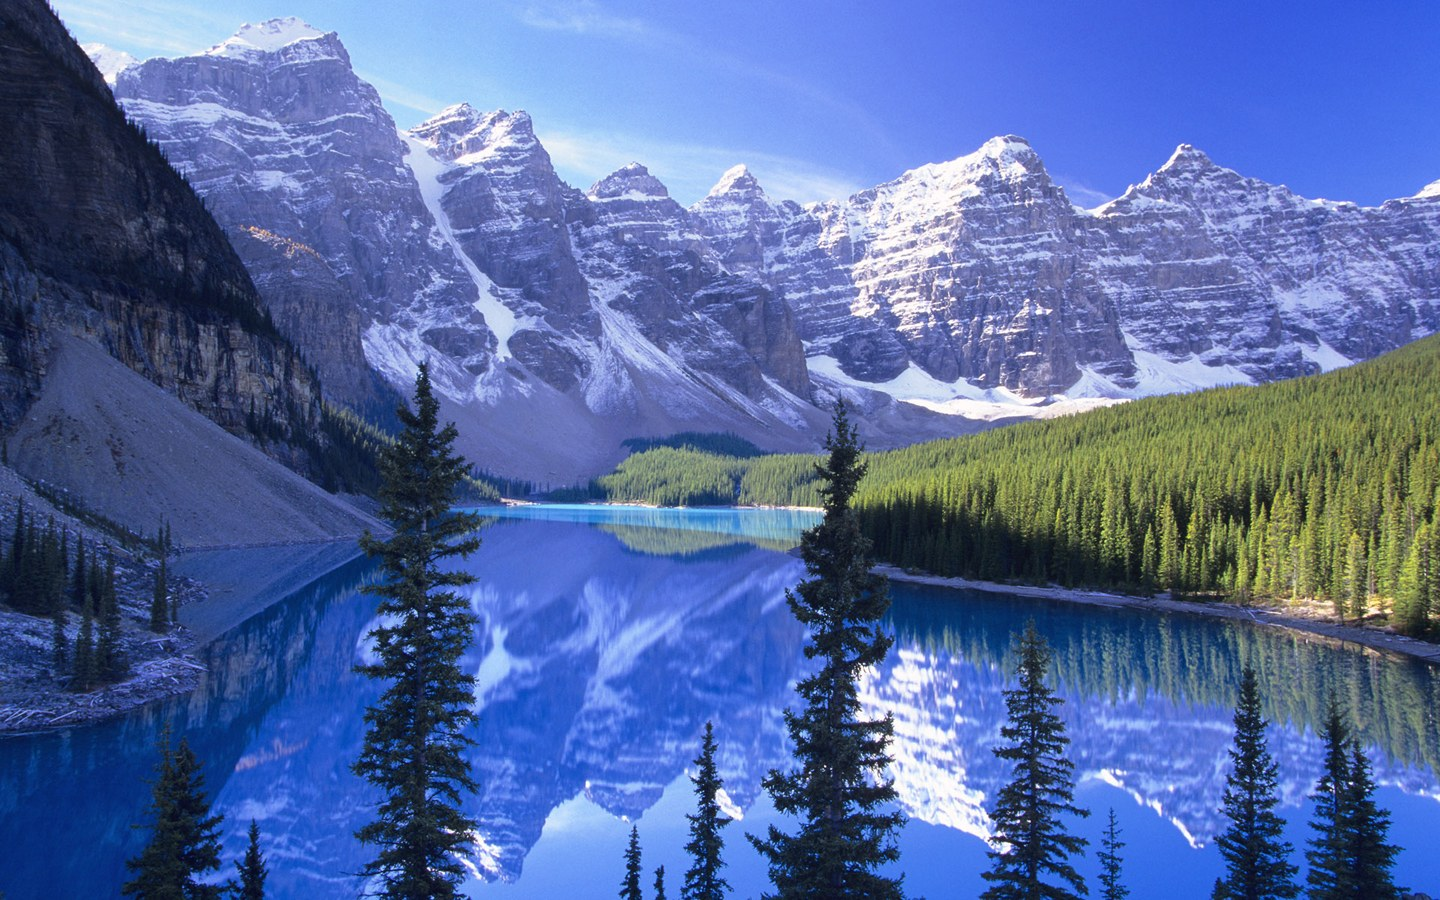 ... : The Most Famous Tourist Spot in America 1440*900 NO.16 Wallpaper